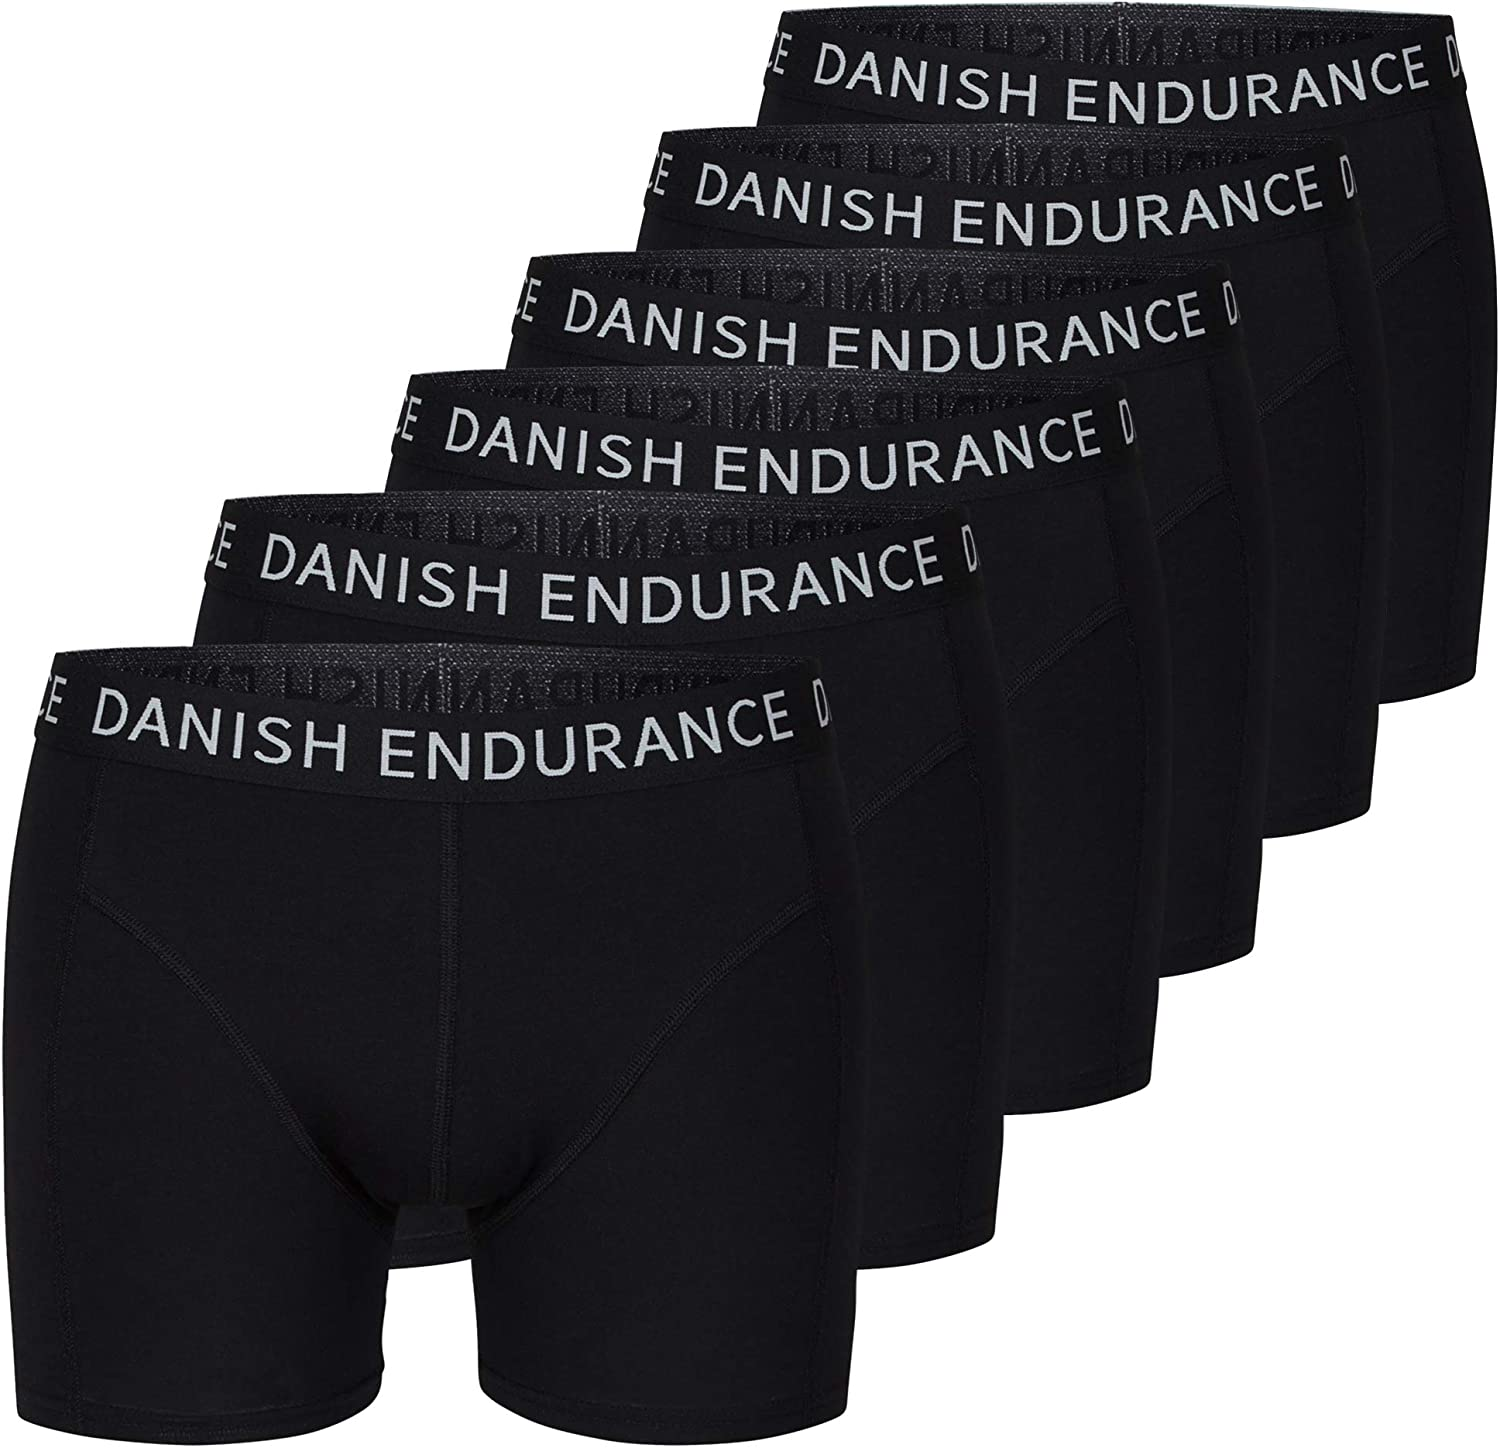 DANISH ENDURANCE Men's Trunks 6-Pack, Stretchy Soft Cotton, Classic Fit Underwear, Boxer Shorts, Superior Comfort